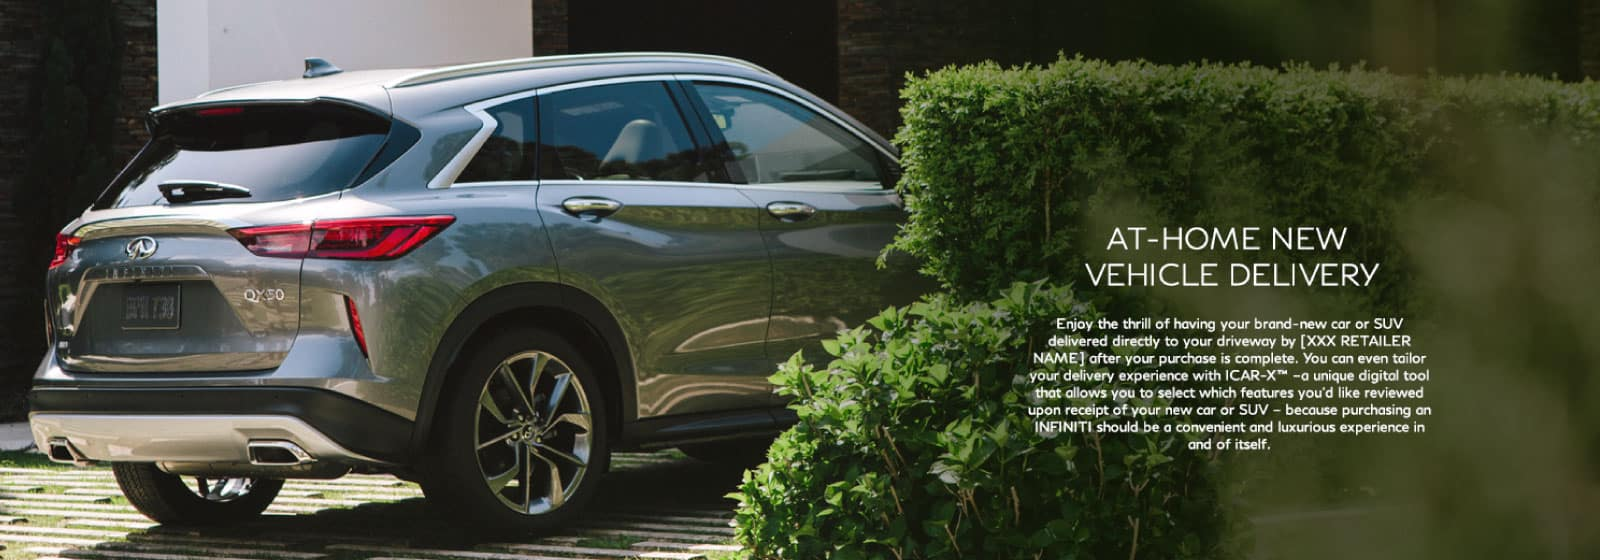 INFINITI-NOW_Home_Delivery_Image